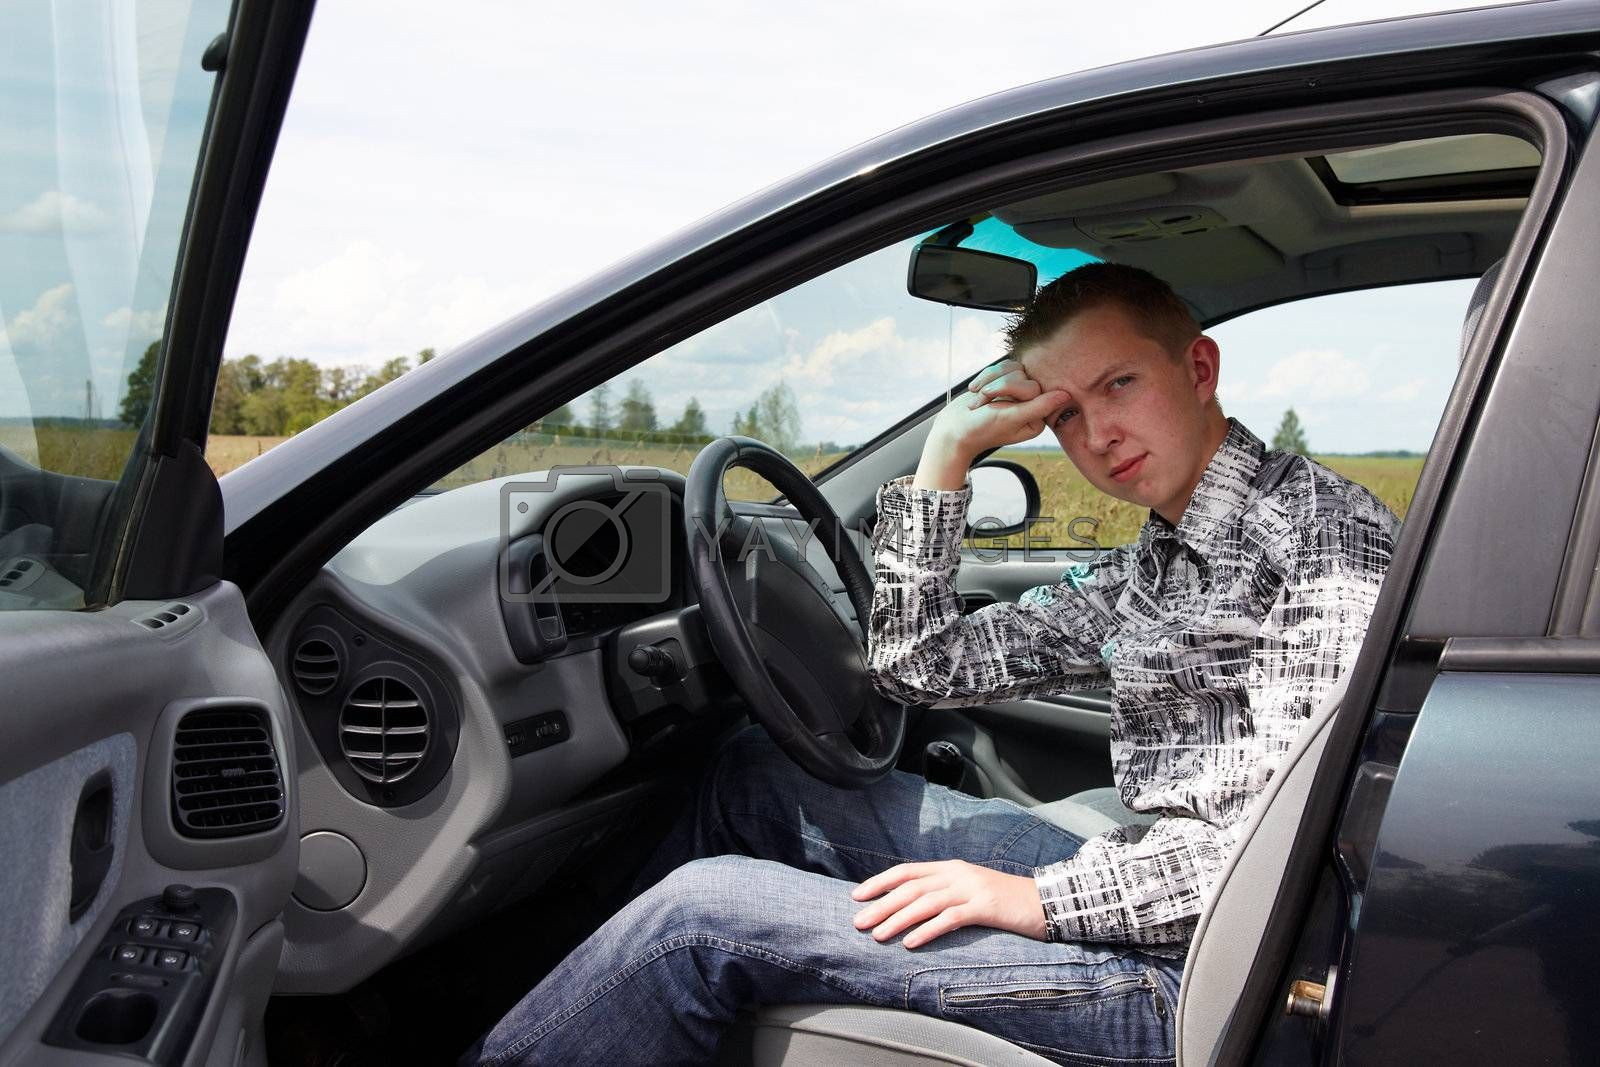 After the driving test young drivers reflect on the errors